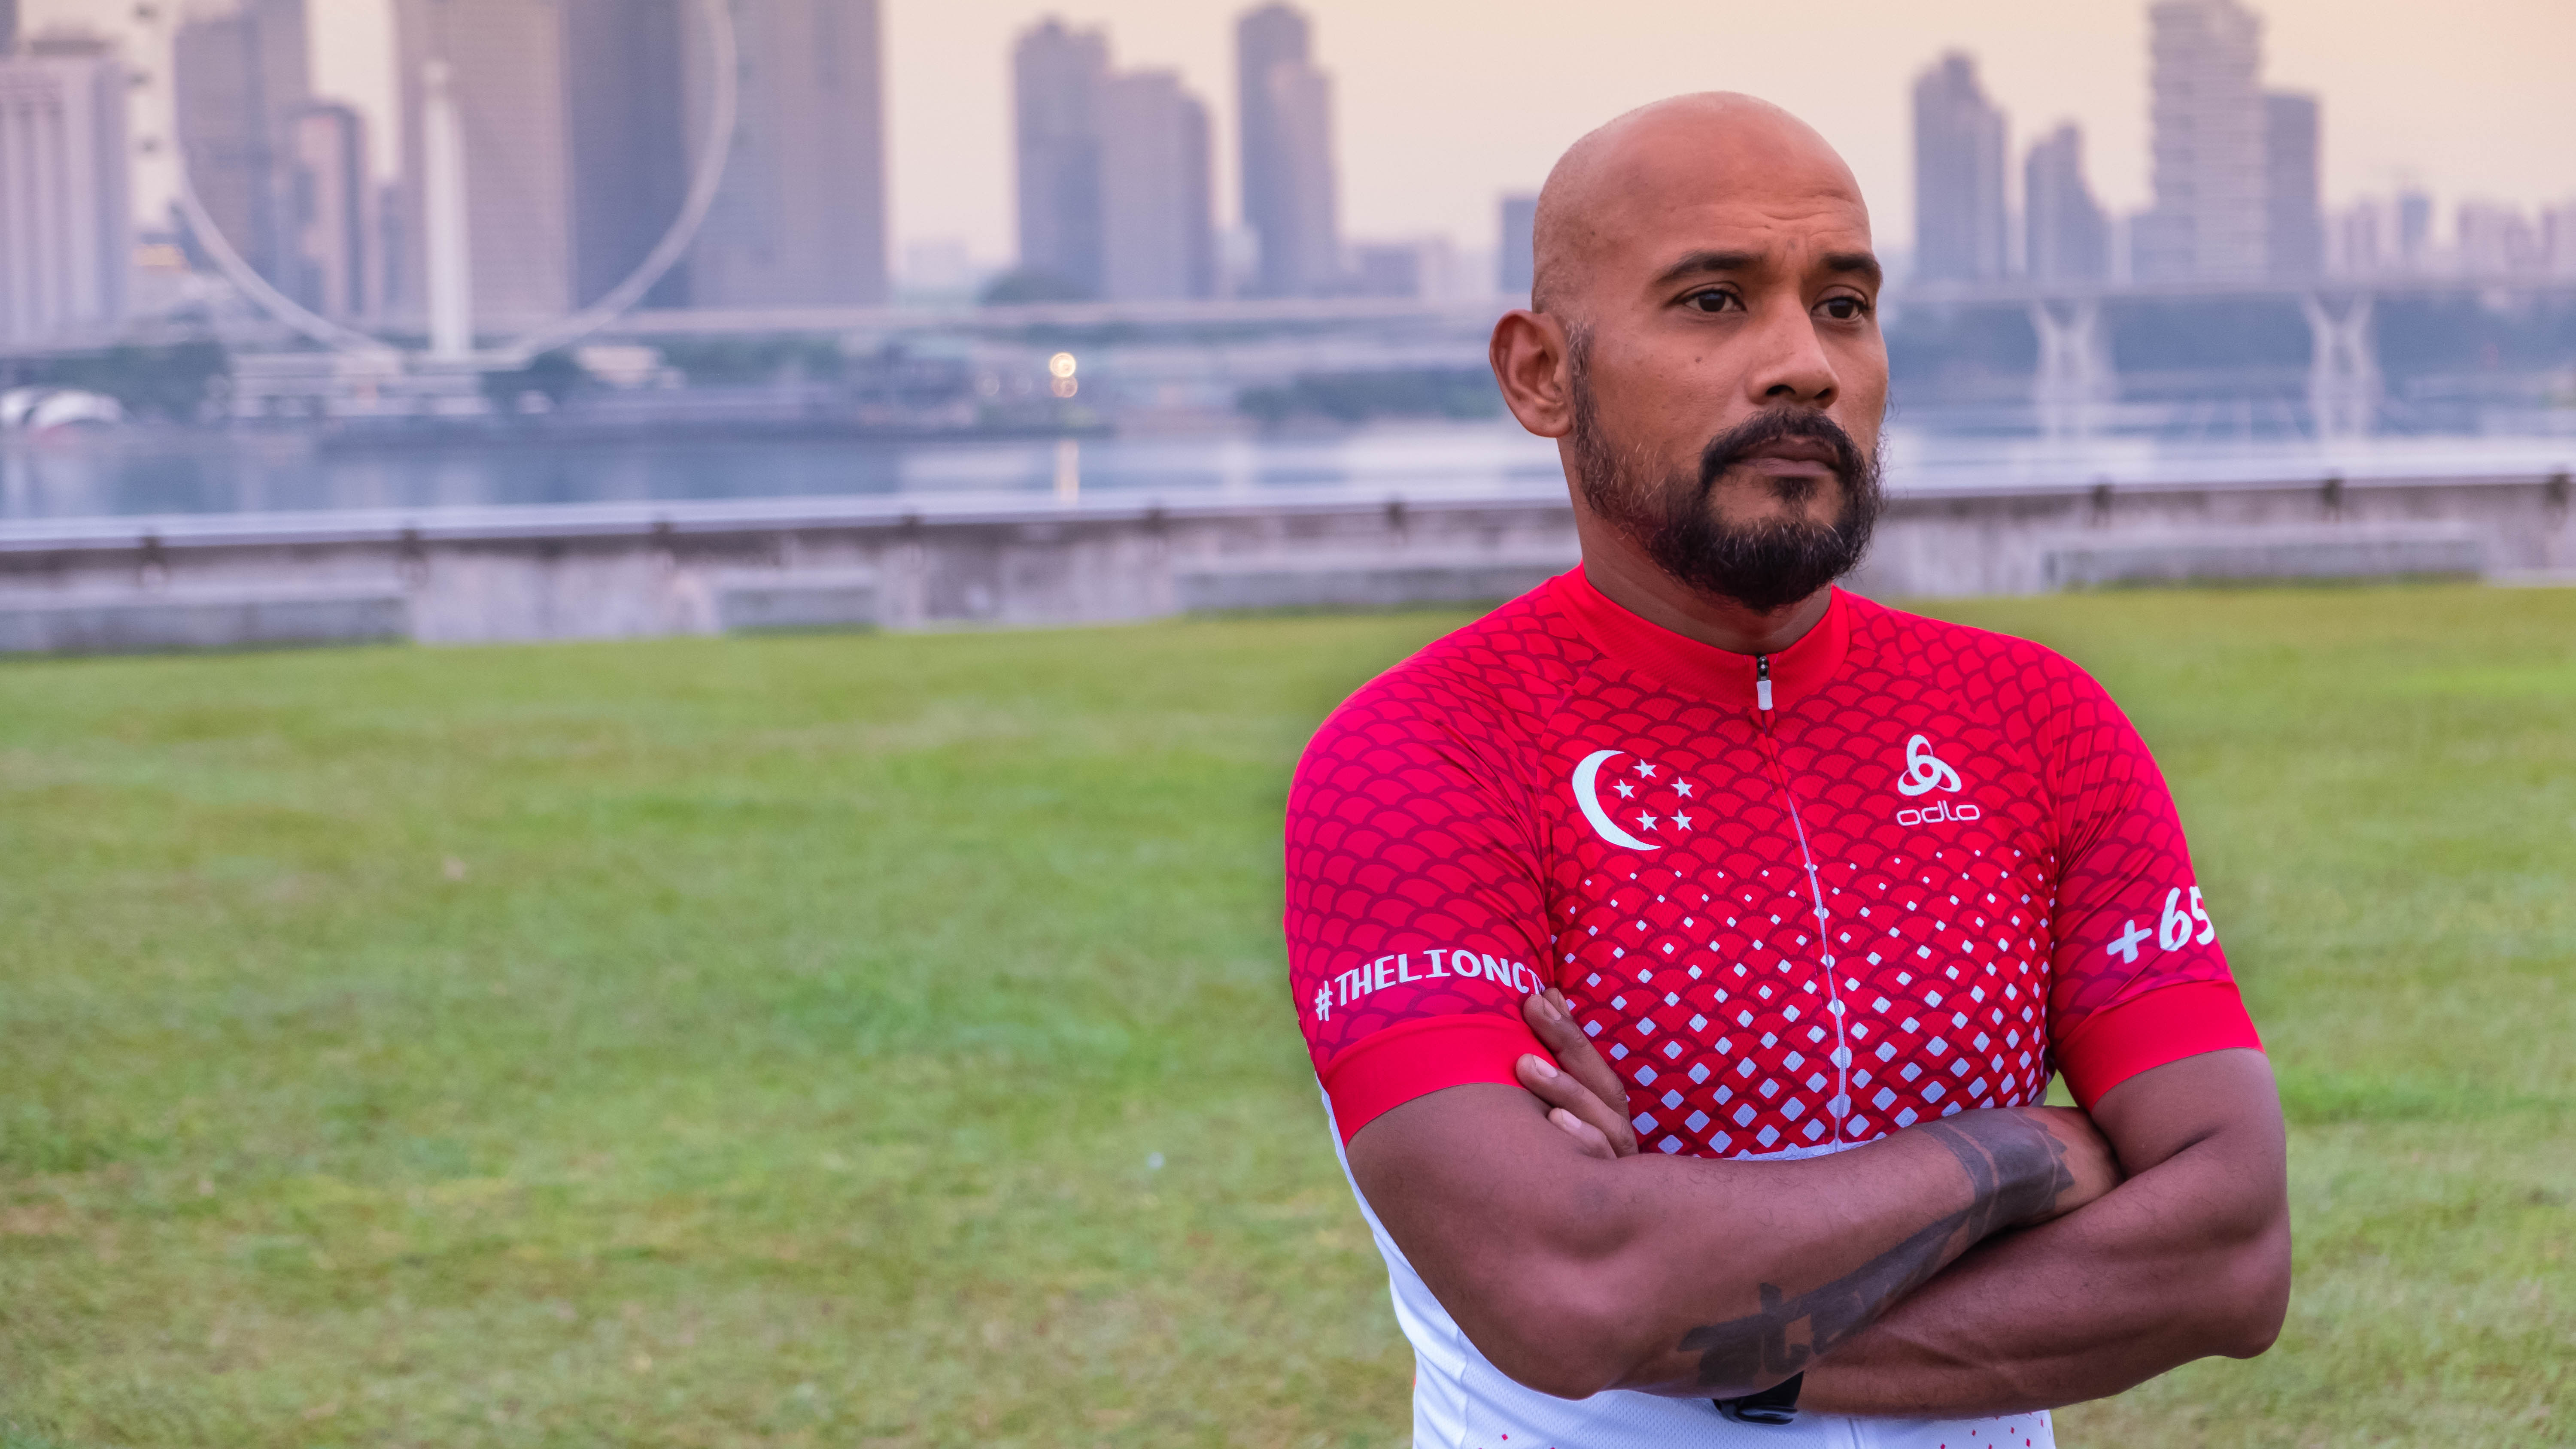 Odlo's Singapore-inspired limited edition cycling jersey